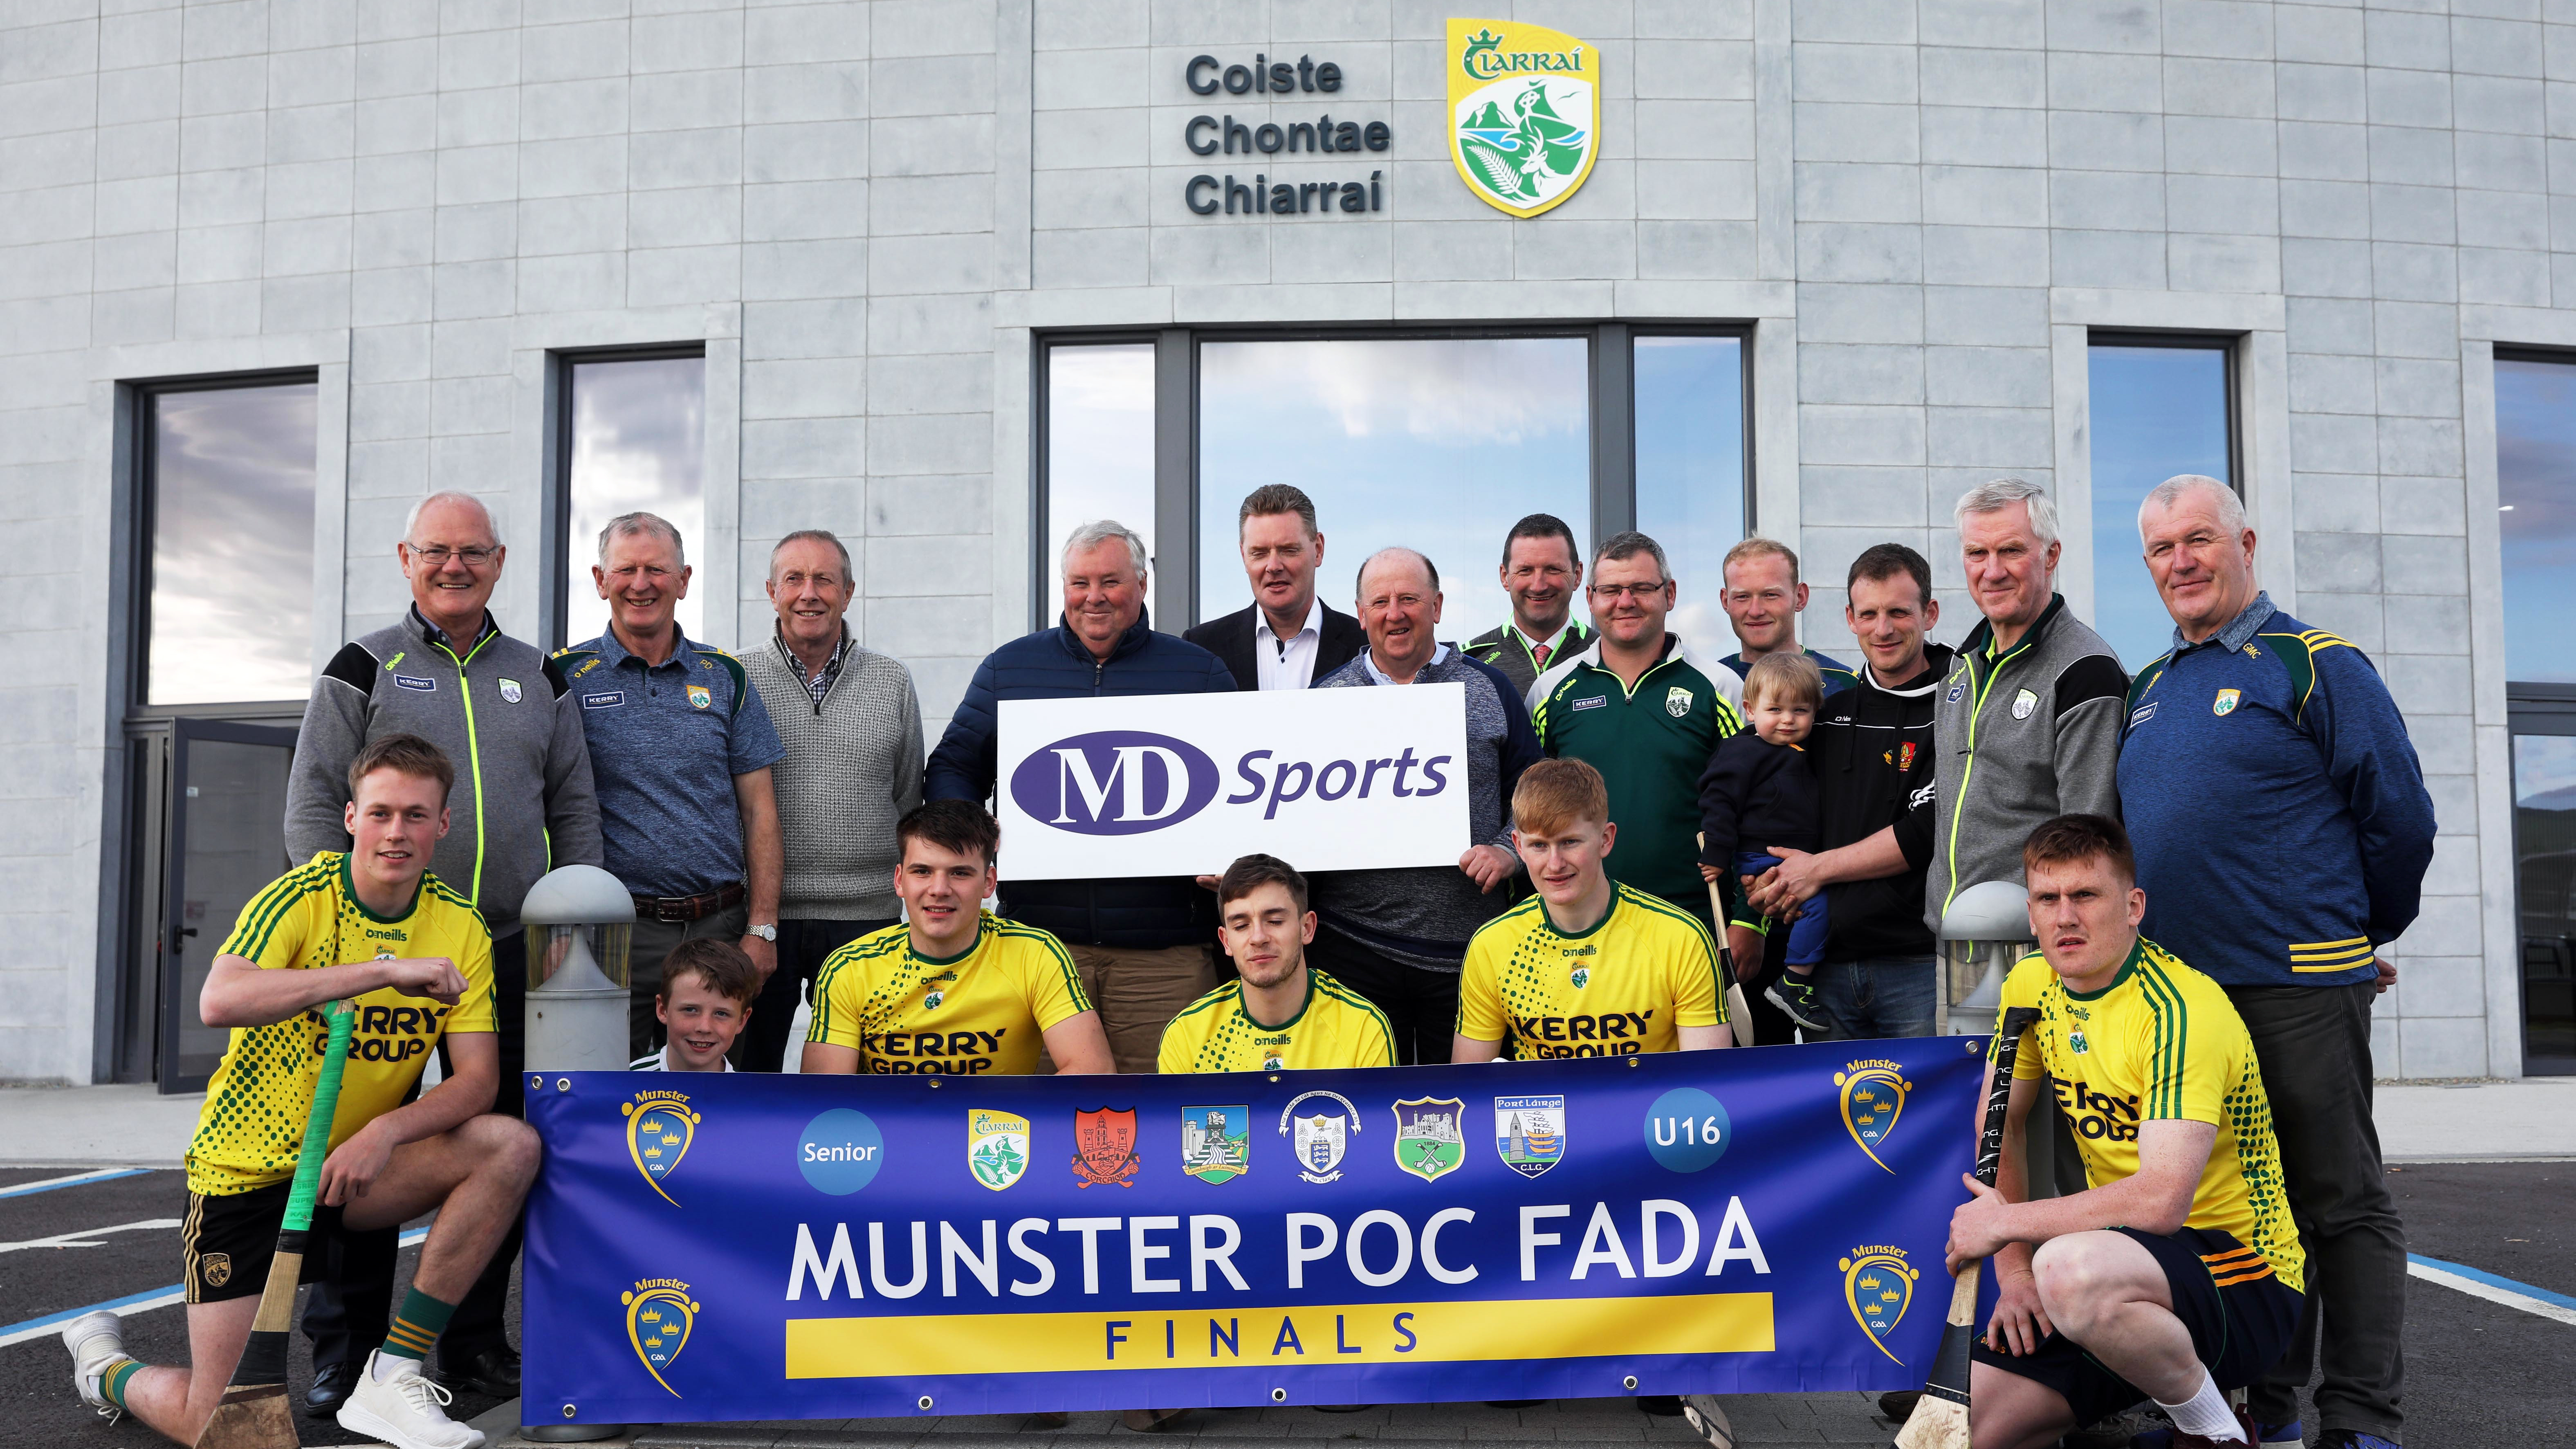 2019 Munster Poc Fada Launch